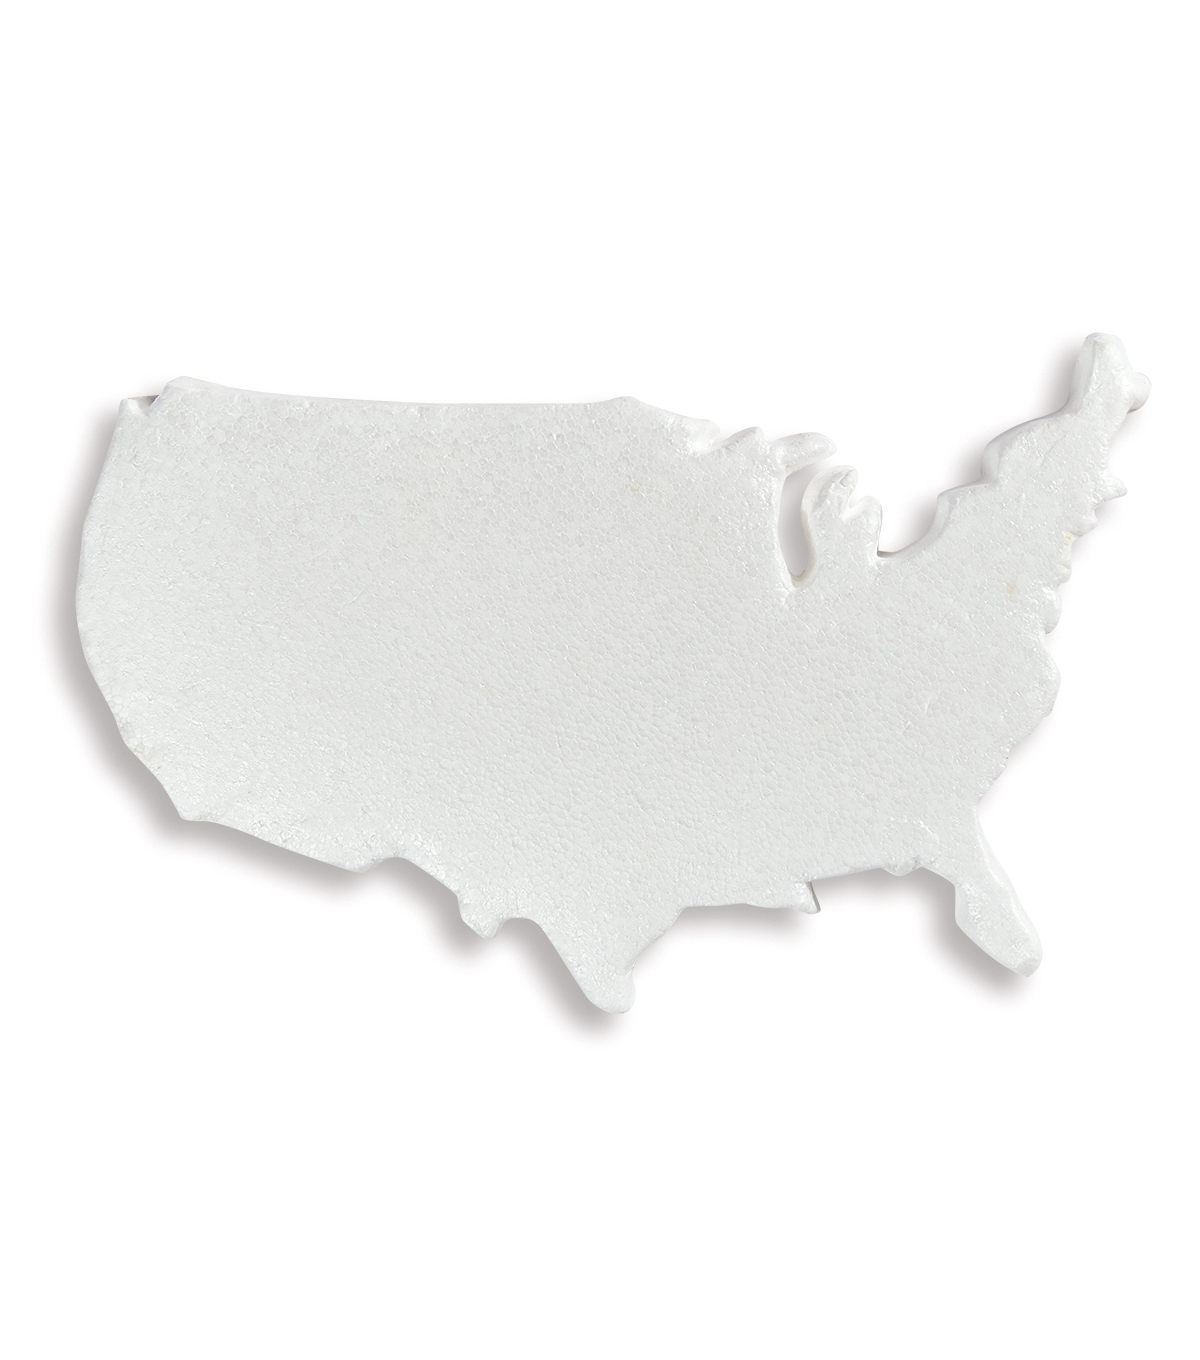 FloraCraft SmoothFoam 10\u0027\u0027 Styrofoam USA-White